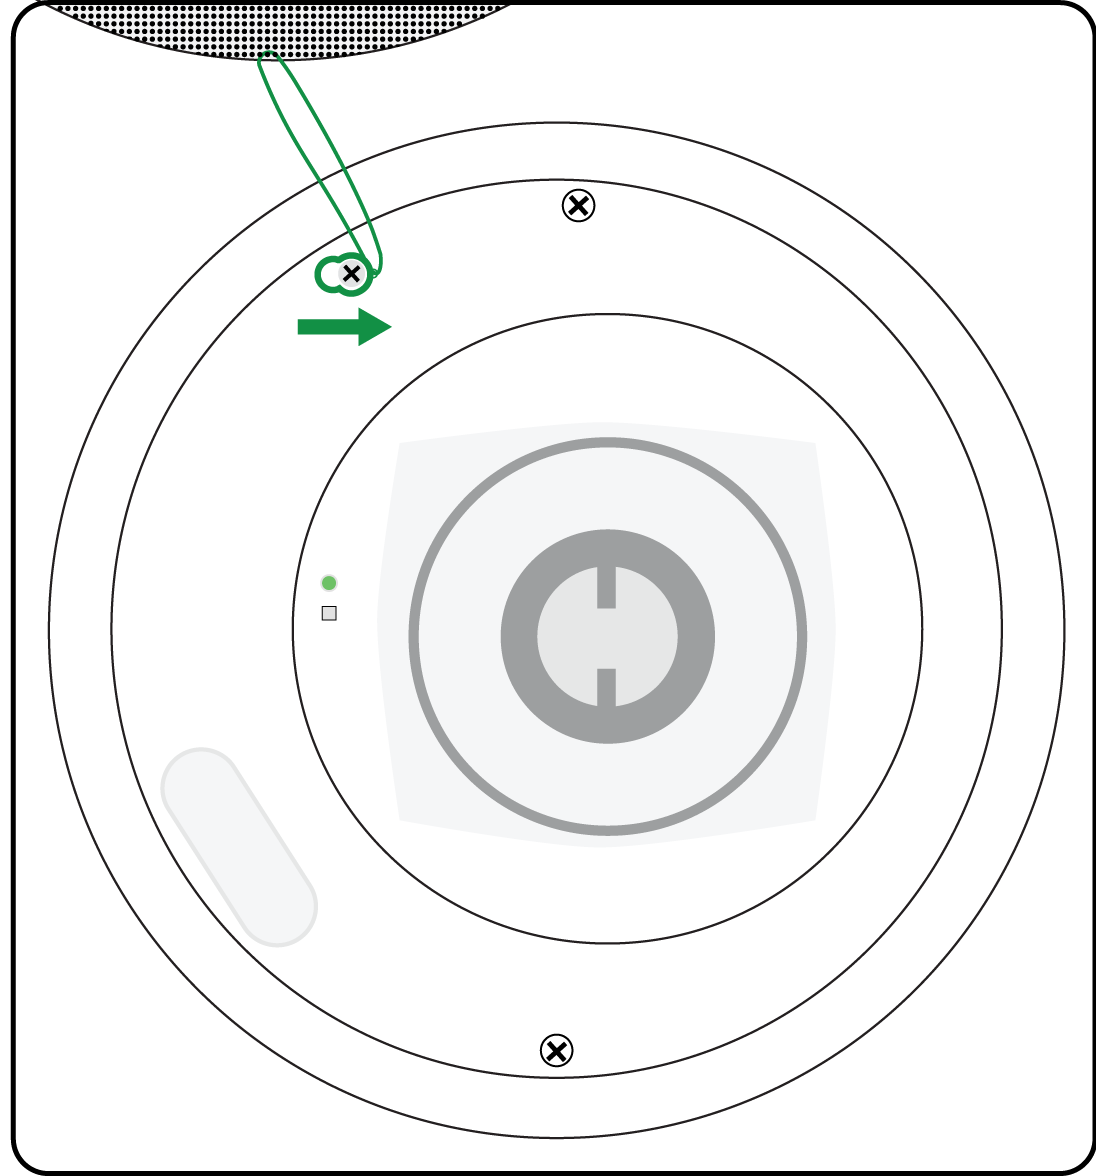 Illustration showing where to attach the grille safety restraint on the MXN5-C loudspeaker.